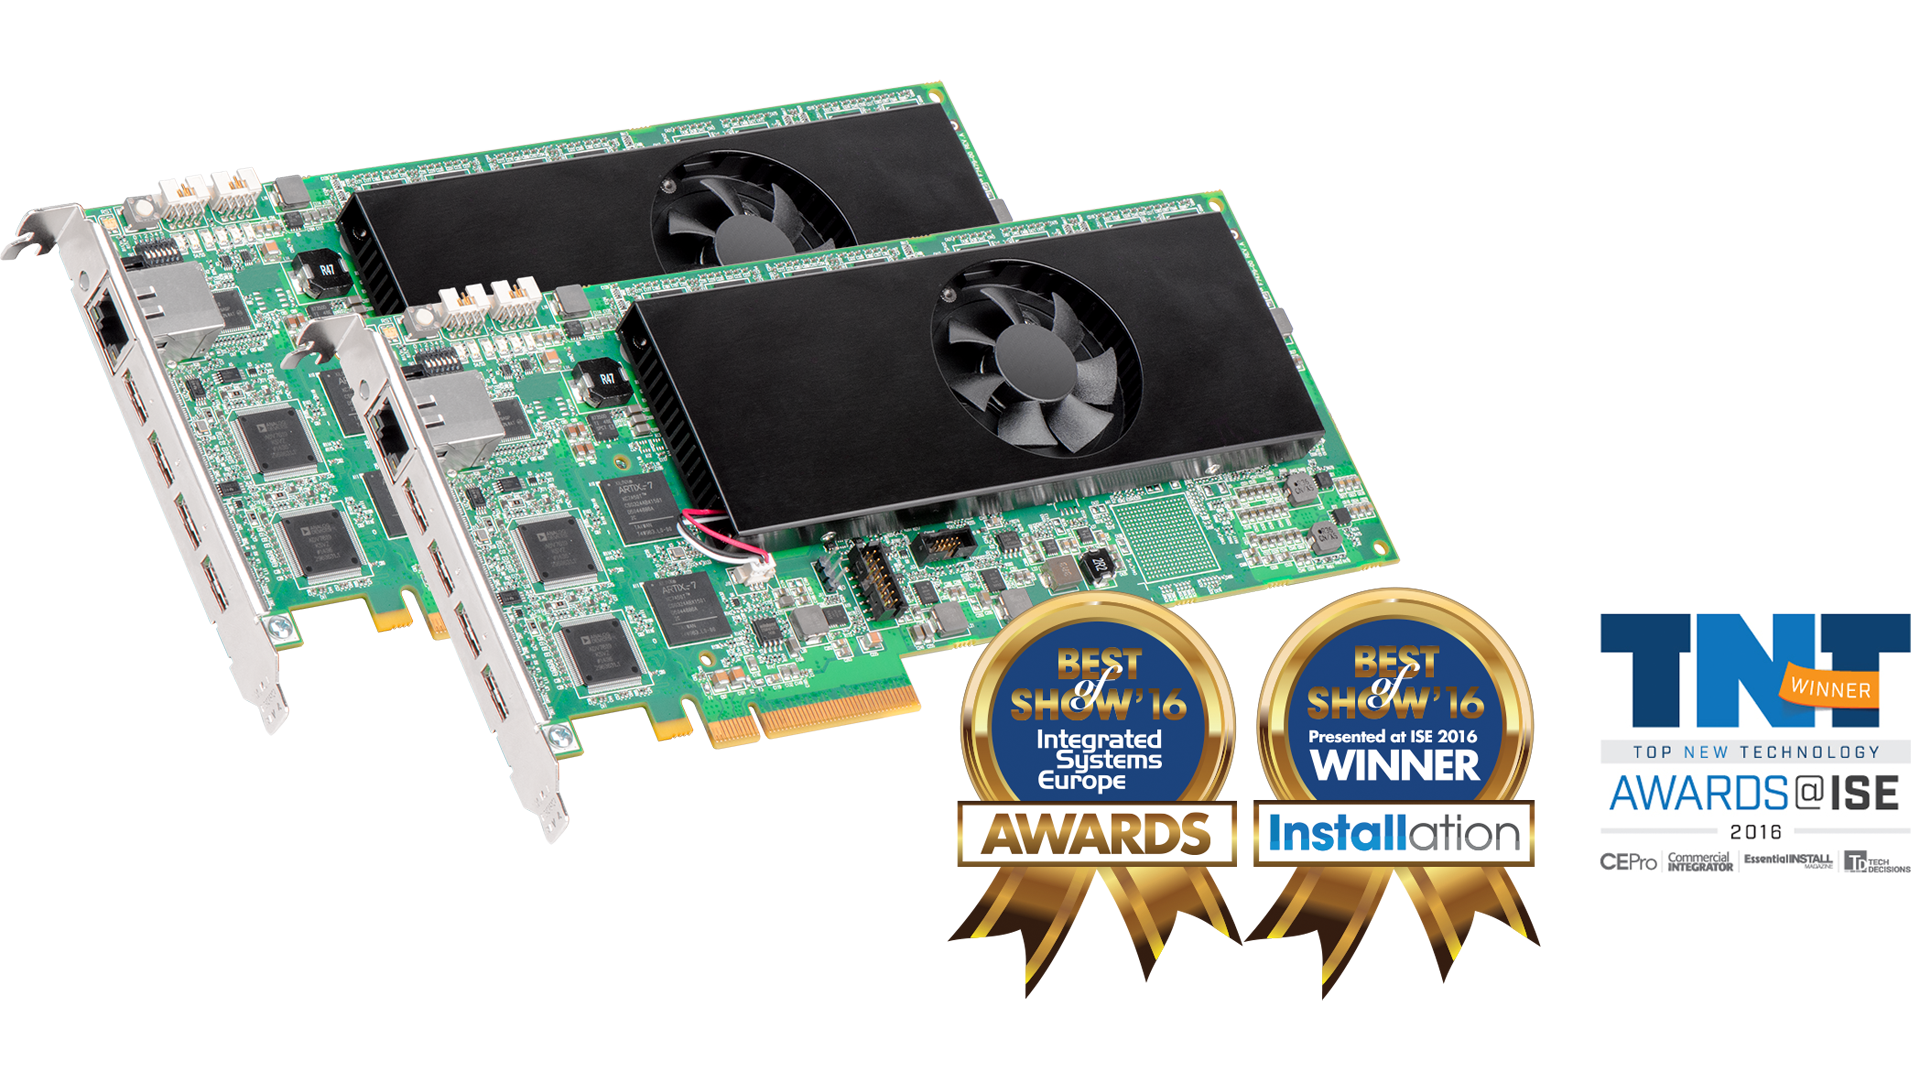 Mura IPX - Best of Show Awards - Integrated Systems Europe 2016